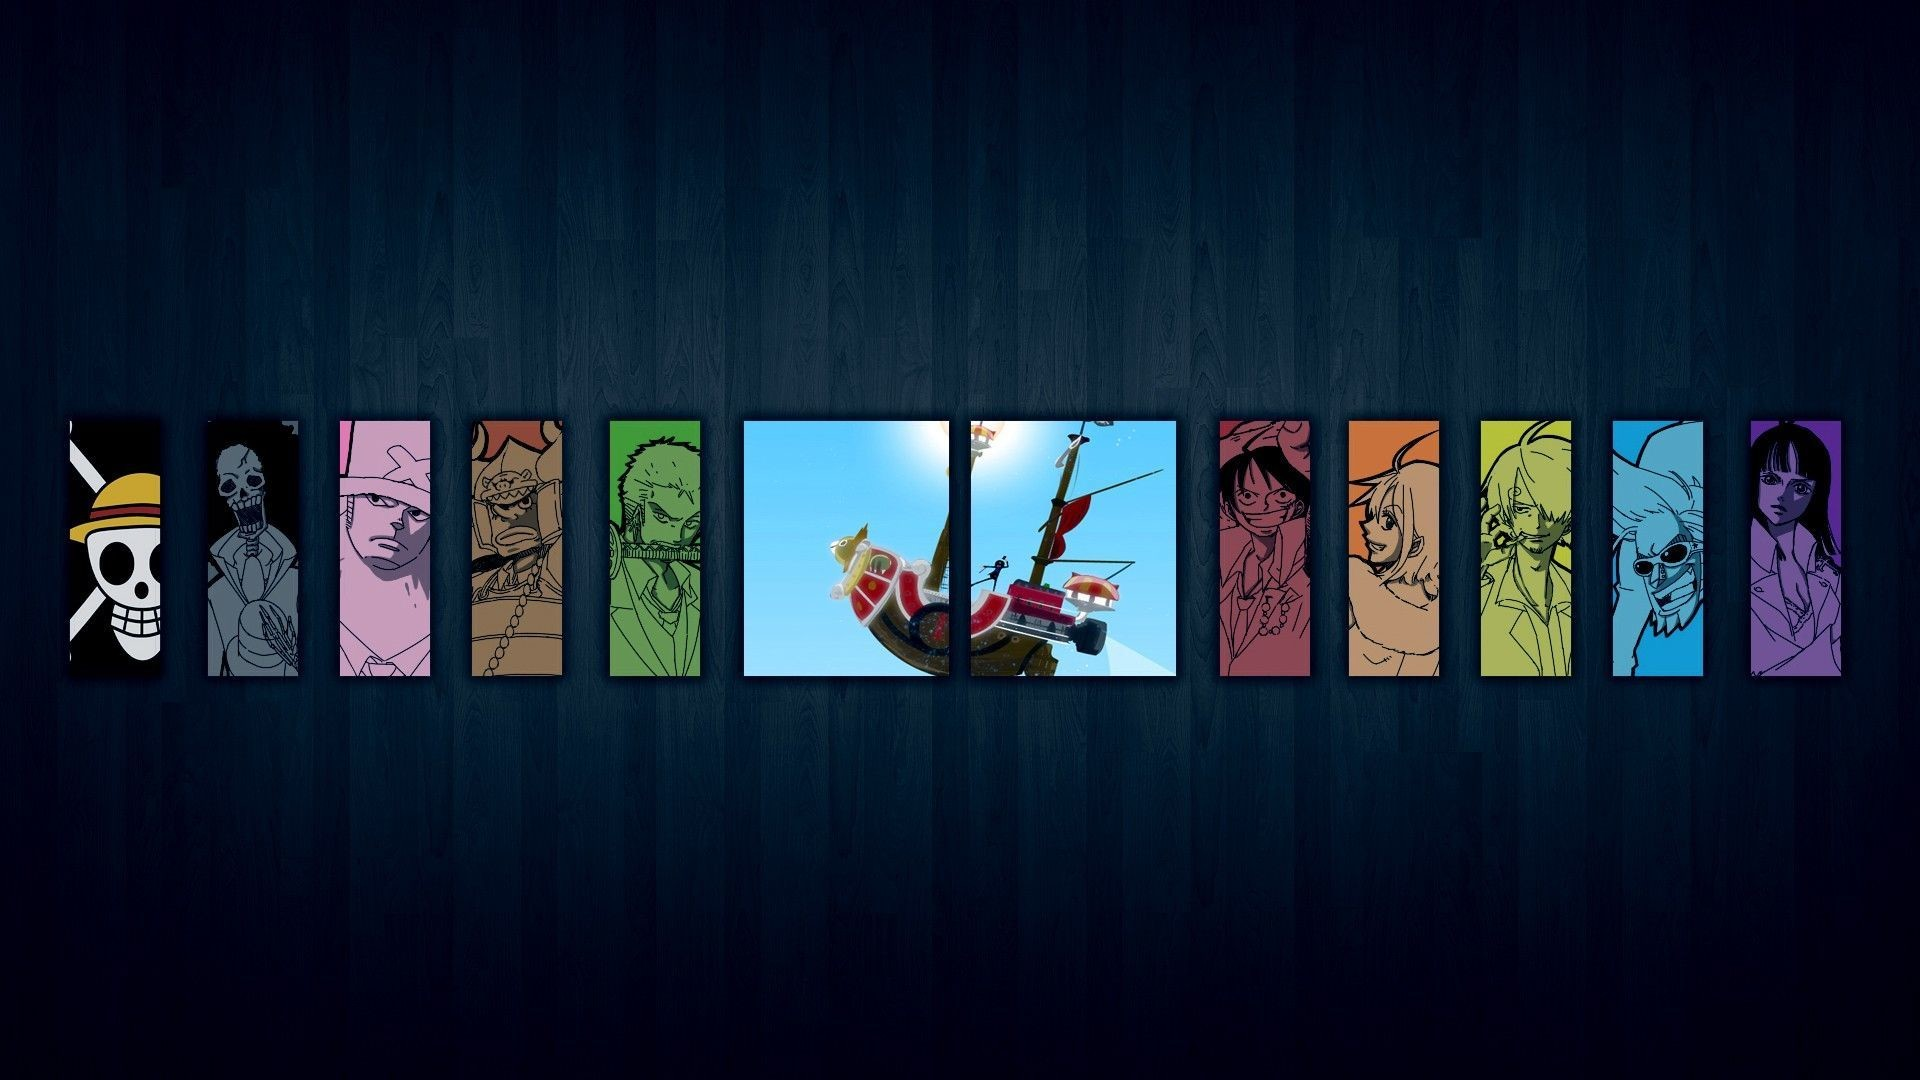 1920x1080 Best One Piece Wallpaper Ever Beautiful One Piece Wallpaper